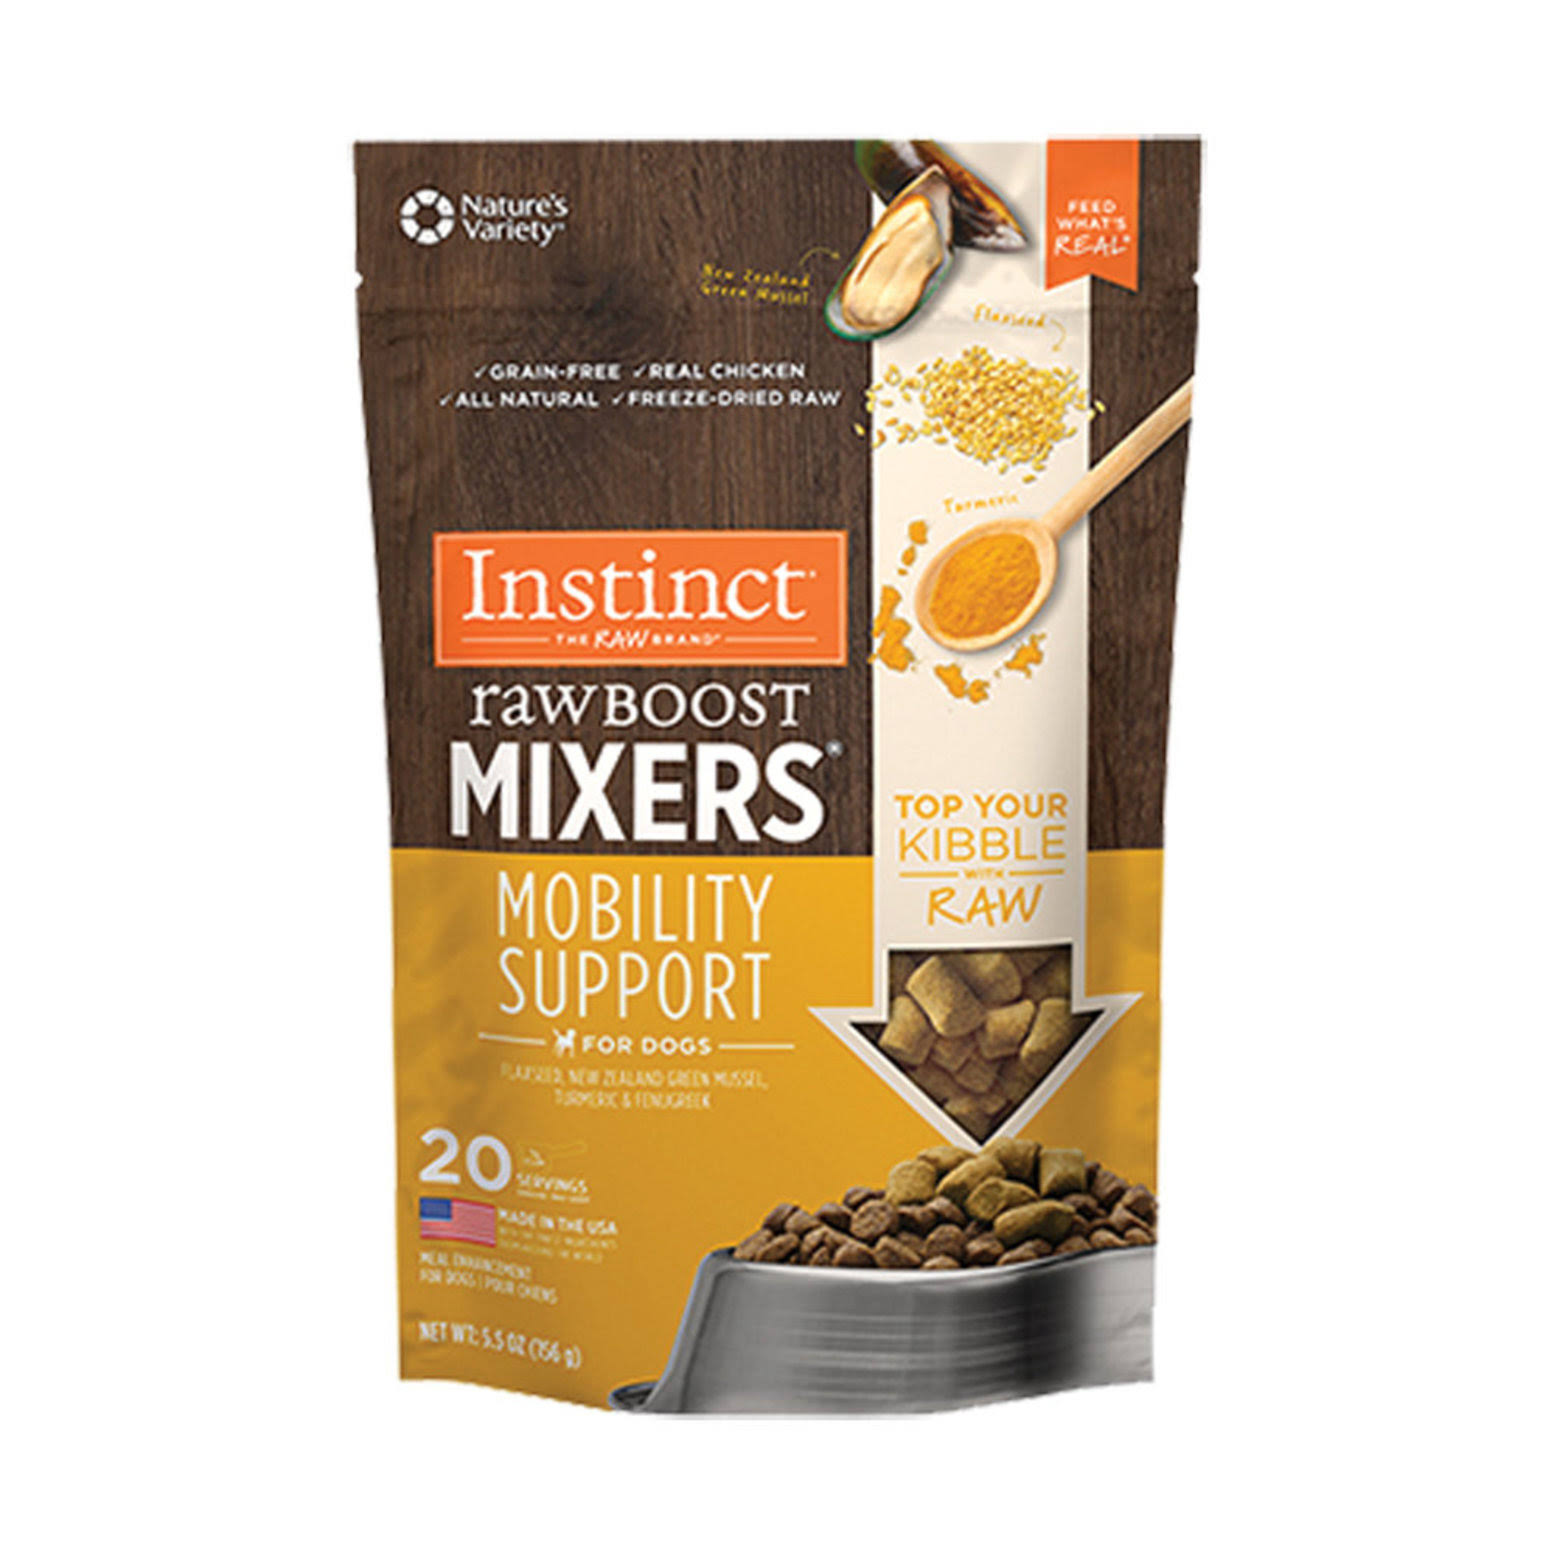 Instinct Freeze Dried Raw Boost Mixers Mobility Support Grain Free All Natural Dog Food Topper by Nature's Variety, 5.5 oz.